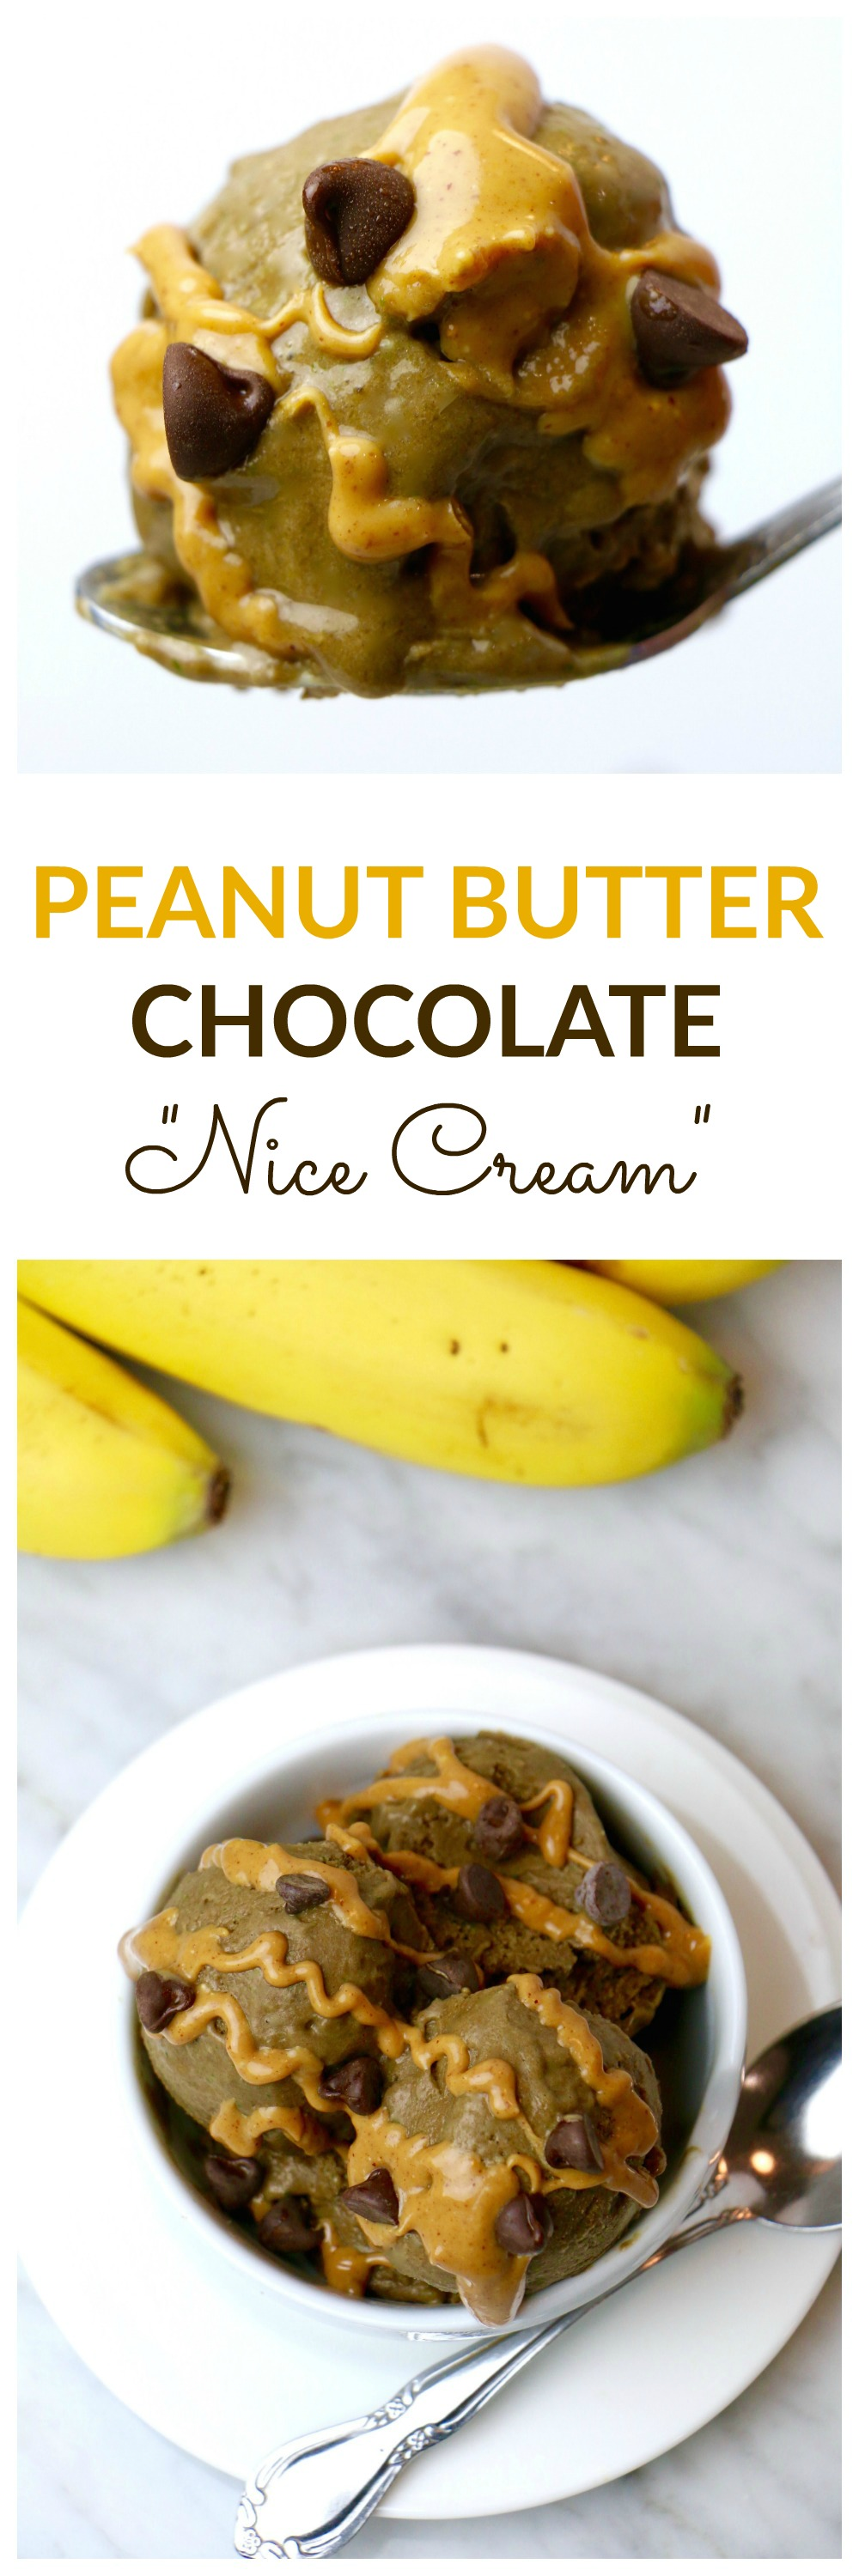 Healthy Peanut Butter Chocolate Nice Cream - packed with plant-based protein, complex carbs, and healthy fat. Makes a great post-workout snack or healthy dessert option!